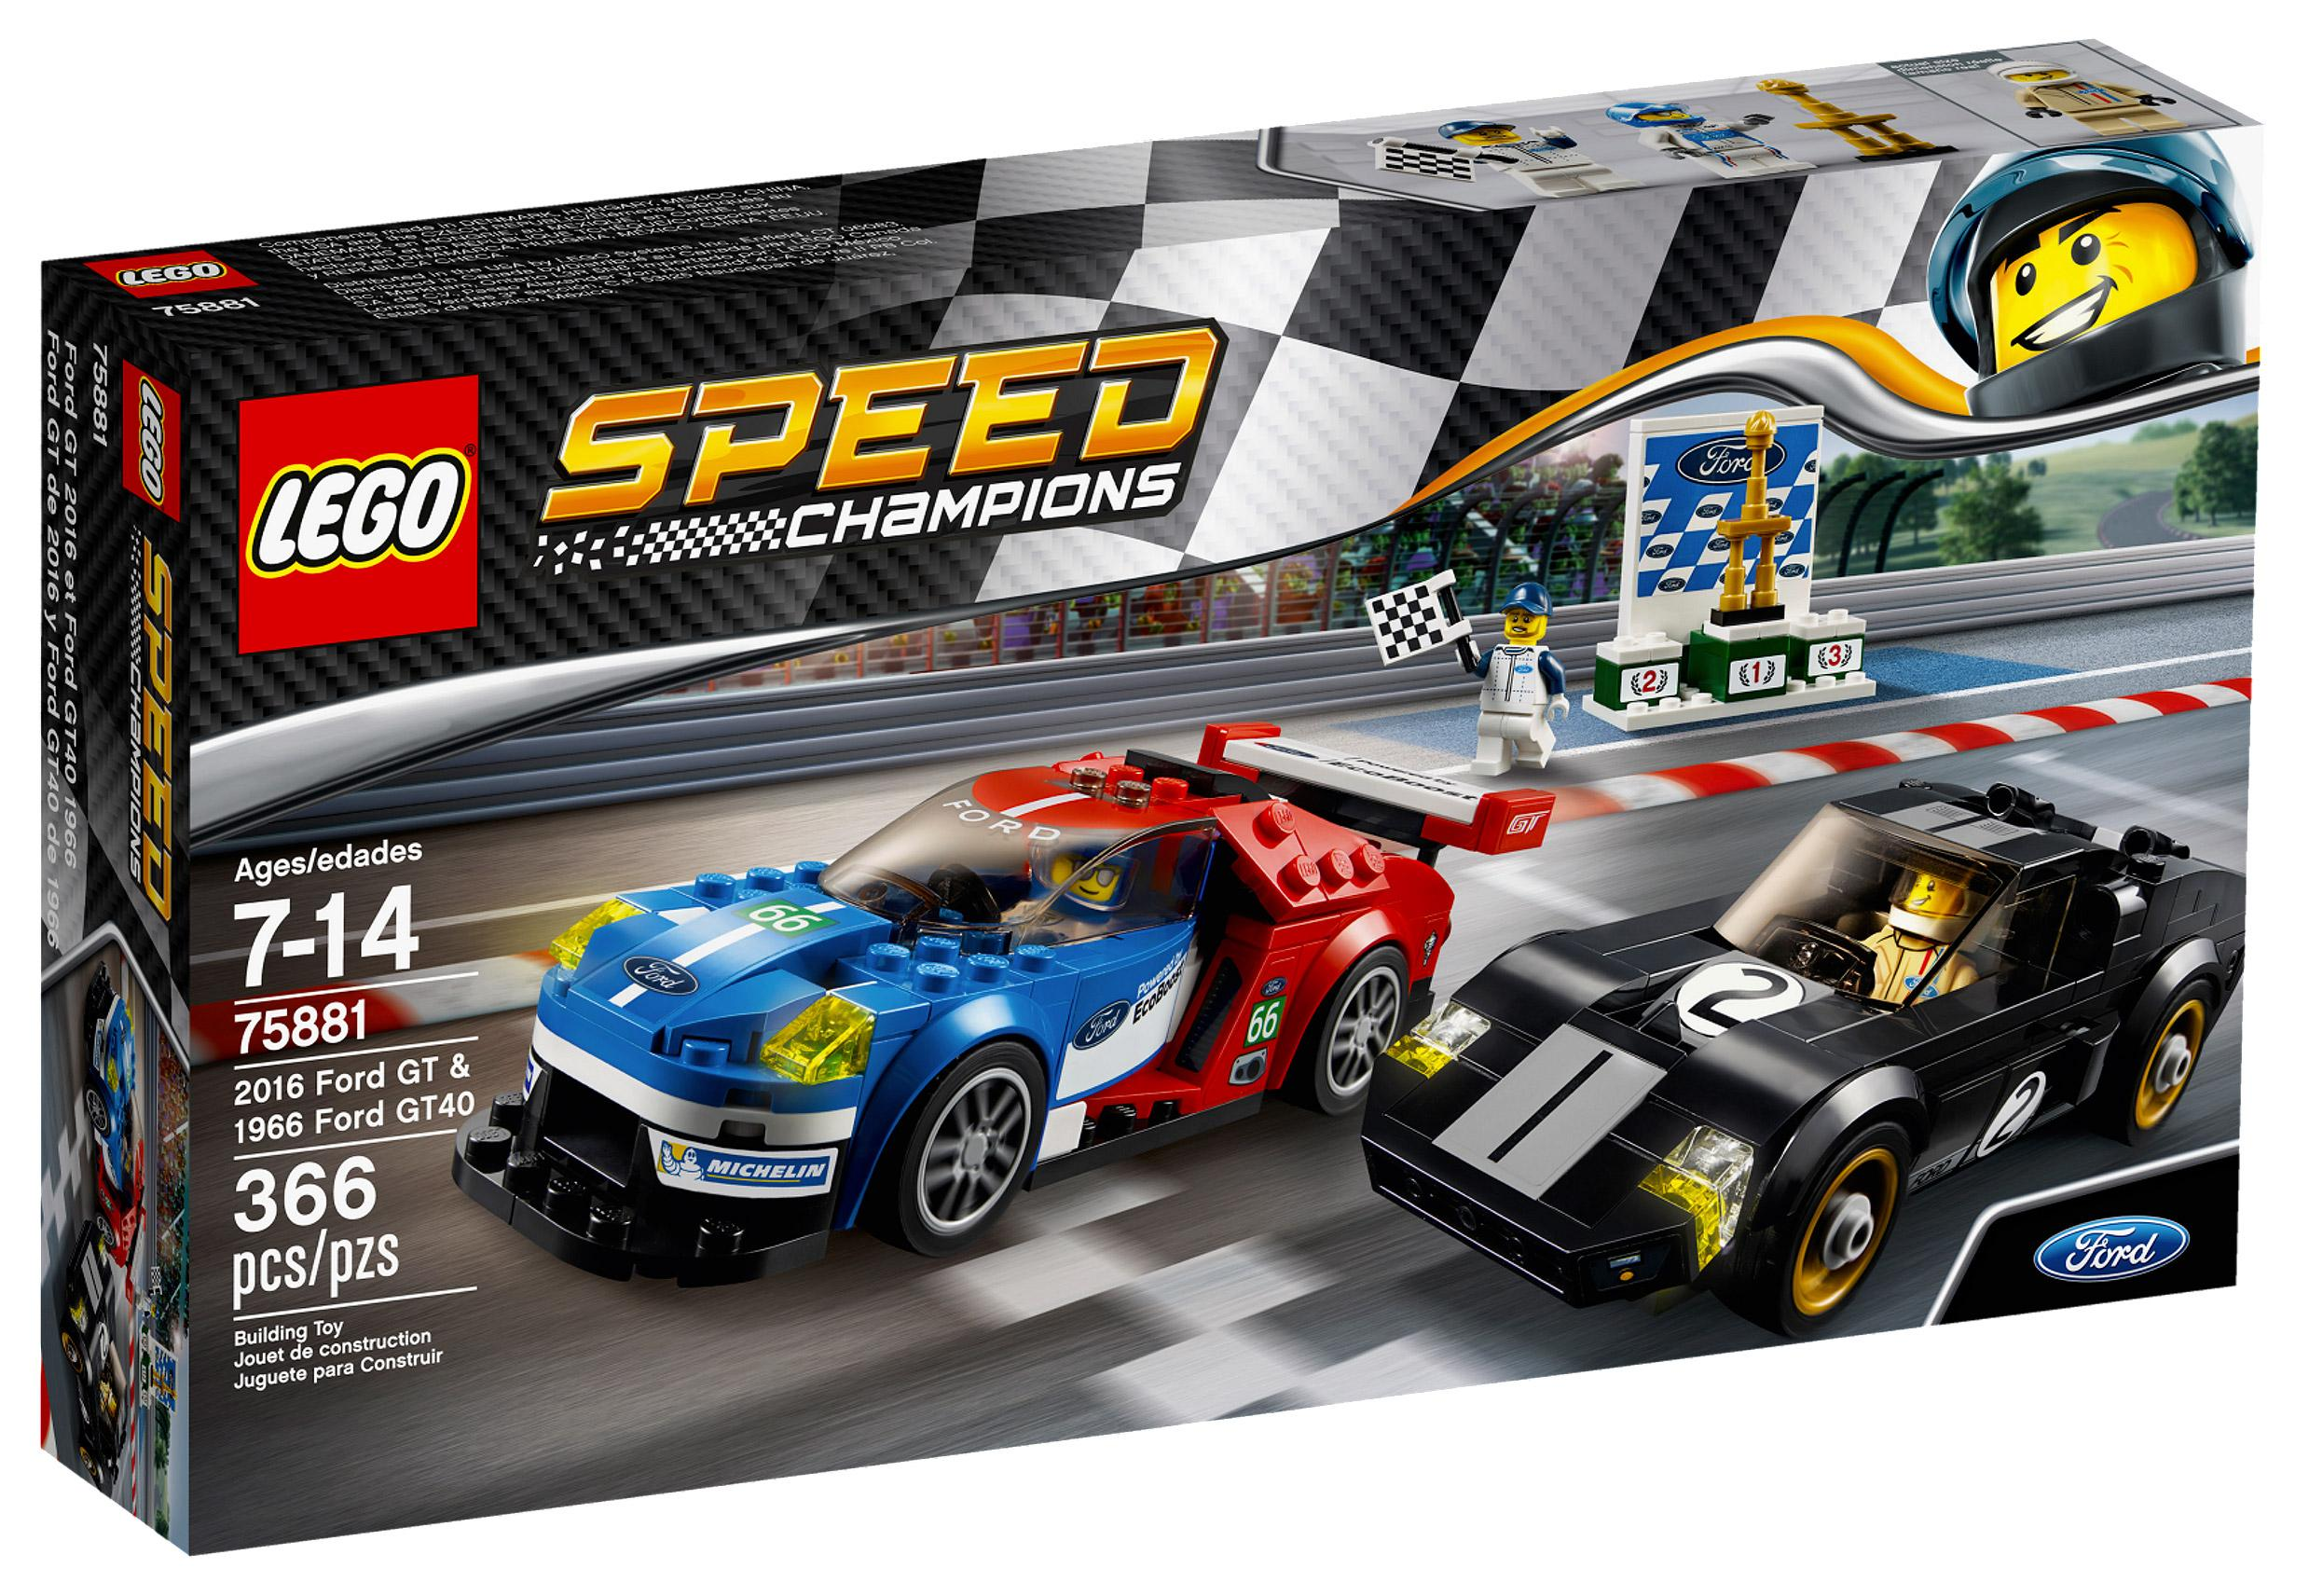 Lego Speed Champions 2016 Ford GT & 1966 Ford GT40